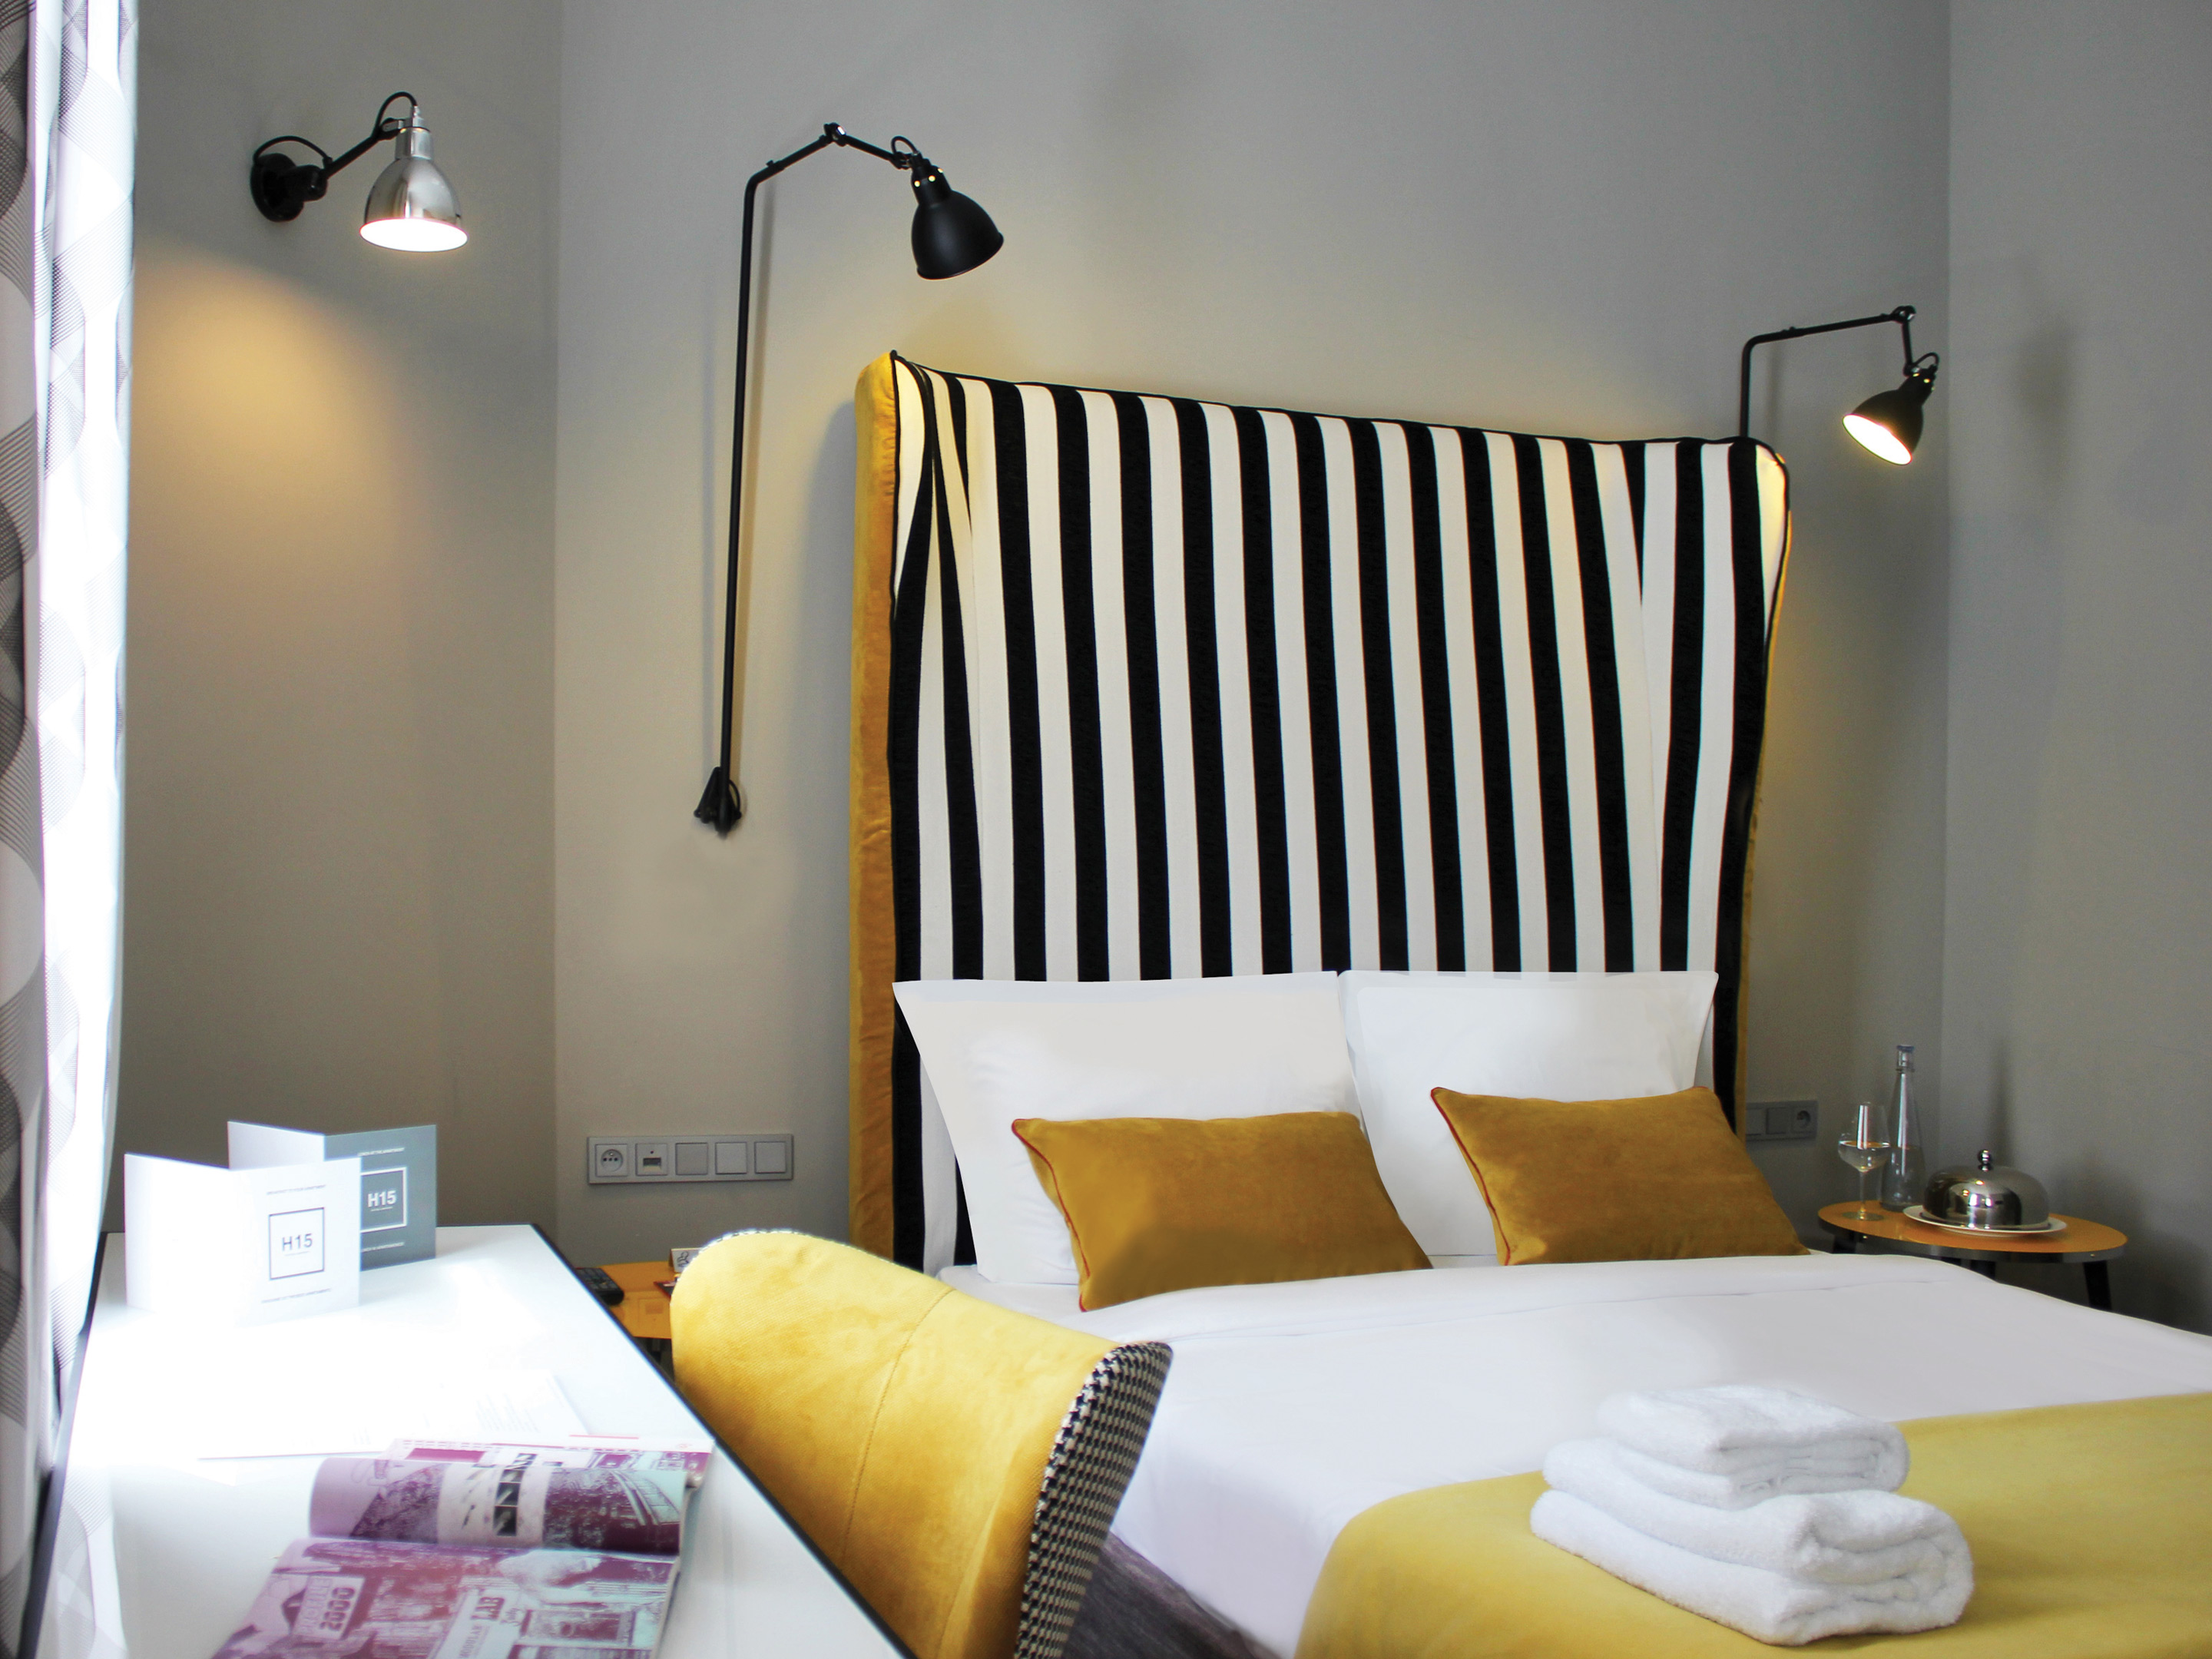 Rooms suites at h15 boutique hotel warsaw poland for Boutique rooms